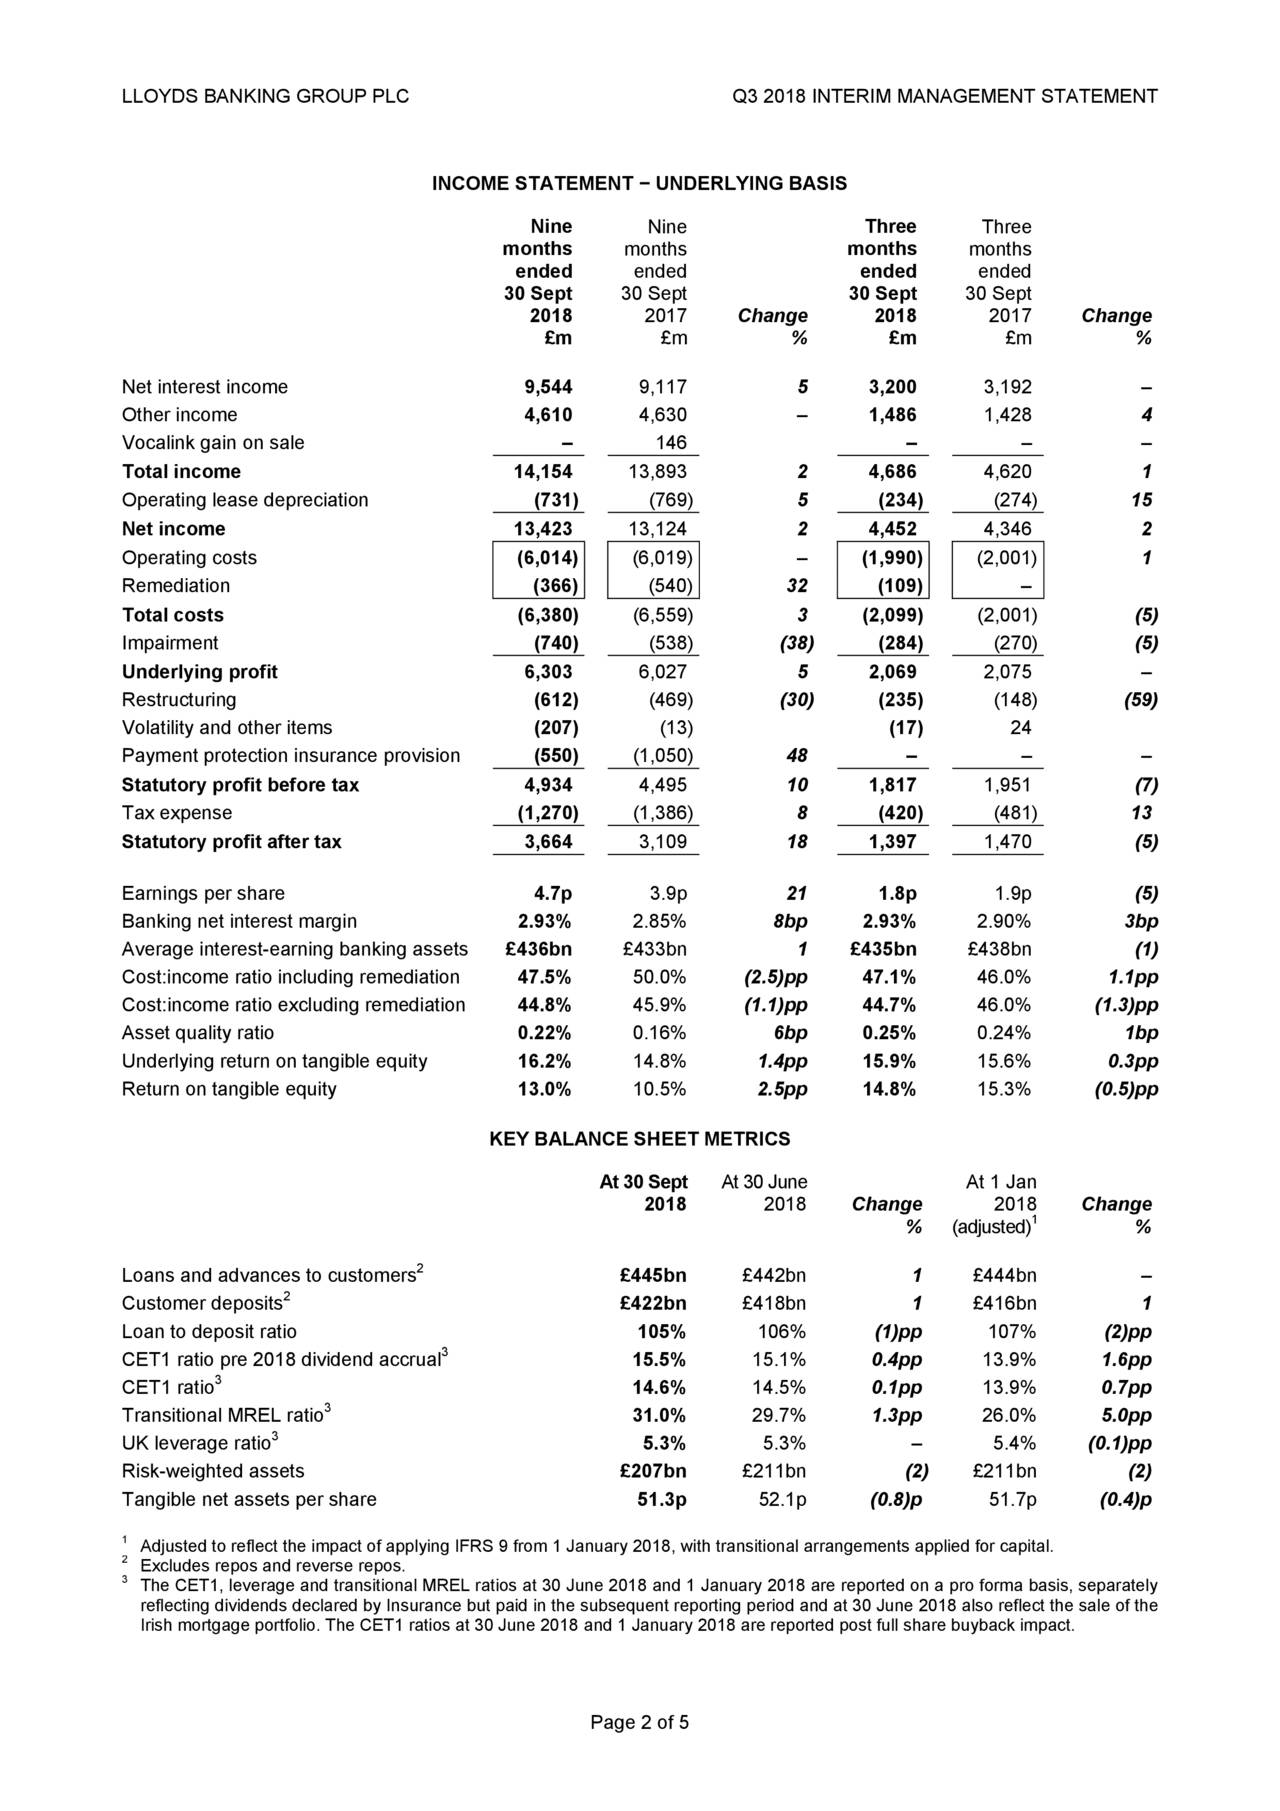 INCOME STATEMENT − UNDERLYING BASIS Nine Nine Three Three months months months months ended ended ended ended 30 Sept 30 Sept 30 Sept 30 Sept 2018 2017 Change 2018 2017 Change £m £m % £m £m % Net interest income 9,544 9,117 5 3,200 3,192 – Other income 4,610 4,630 – 1,486 1,428 4 Vocalink gain on sale – 146 – – – Total income 14,154 13,893 2 4,686 4,620 1 Operating lease depreciation (731) (769) 5 (234) (274) 15 Net income 13,423 13,124 2 4,452 4,346 2 Operating costs (6,014) (6,019) – (1,990) (2,001) 1 Remediation (366) (540) 32 (109) – Total costs (6,380) (6,559) 3 (2,099) (2,001) (5) Impairment (740) (538) (38) (284) (270) (5) Underlying profit 6,303 6,027 5 2,069 2,075 – Restructuring (612) (469) (30) (235) (148) (59) Volatility and other items (207) (13) (17) 24 Payment protection insurance provision (550) (1,050) 48 – – – Statutory profit before tax 4,934 4,495 10 1,817 1,951 (7) Tax expense (1,270) (1,386) 8 (420) (481) 13 Statutory profit after tax 3,664 3,109 18 1,397 1,470 (5) Earnings per share 4.7p 3.9p 21 1.8p 1.9p (5) Banking net interest margin 2.93% 2.85% 8bp 2.93% 2.90% 3bp Average interest-earning banking assets £436bn £433bn 1 £435bn £438bn (1) Cost:income ratio including remediation 47.5% 50.0% (2.5)pp 47.1% 46.0% 1.1pp Cost:income ratio excluding remediation 44.8% 45.9% (1.1)pp 44.7% 46.0% (1.3)pp Asset quality ratio 0.22% 0.16% 6bp 0.25% 0.24% 1bp Underlying return on tangible equity 16.2% 14.8% 1.4pp 15.9% 15.6% 0.3pp Return on tangible equity 13.0% 10.5% 2.5pp 14.8% 15.3% (0.5)pp KEY BALANCE SHEET METRICS At 30 Sept At 30 June At 1 Jan 2018 2018 Change 20181 Change % (adjusted) % Loans and advances to customers2 £445bn £442bn 1 £444bn – 2 Customer deposits £422bn £418bn 1 £416bn 1 Loan to deposit ratio 105% 106% (1)pp 107% (2)pp 3 CET1 ratio pre 2018 dividend accrual 15.5% 15.1% 0.4pp 13.9% 1.6pp CET1 ratio3 14.6% 14.5% 0.1pp 13.9% 0.7pp 3 Transitional MREL ratio 31.0% 29.7% 1.3pp 26.0% 5.0pp UK leverage ratio 5.3% 5.3% – 5.4% (0.1)pp Risk-we